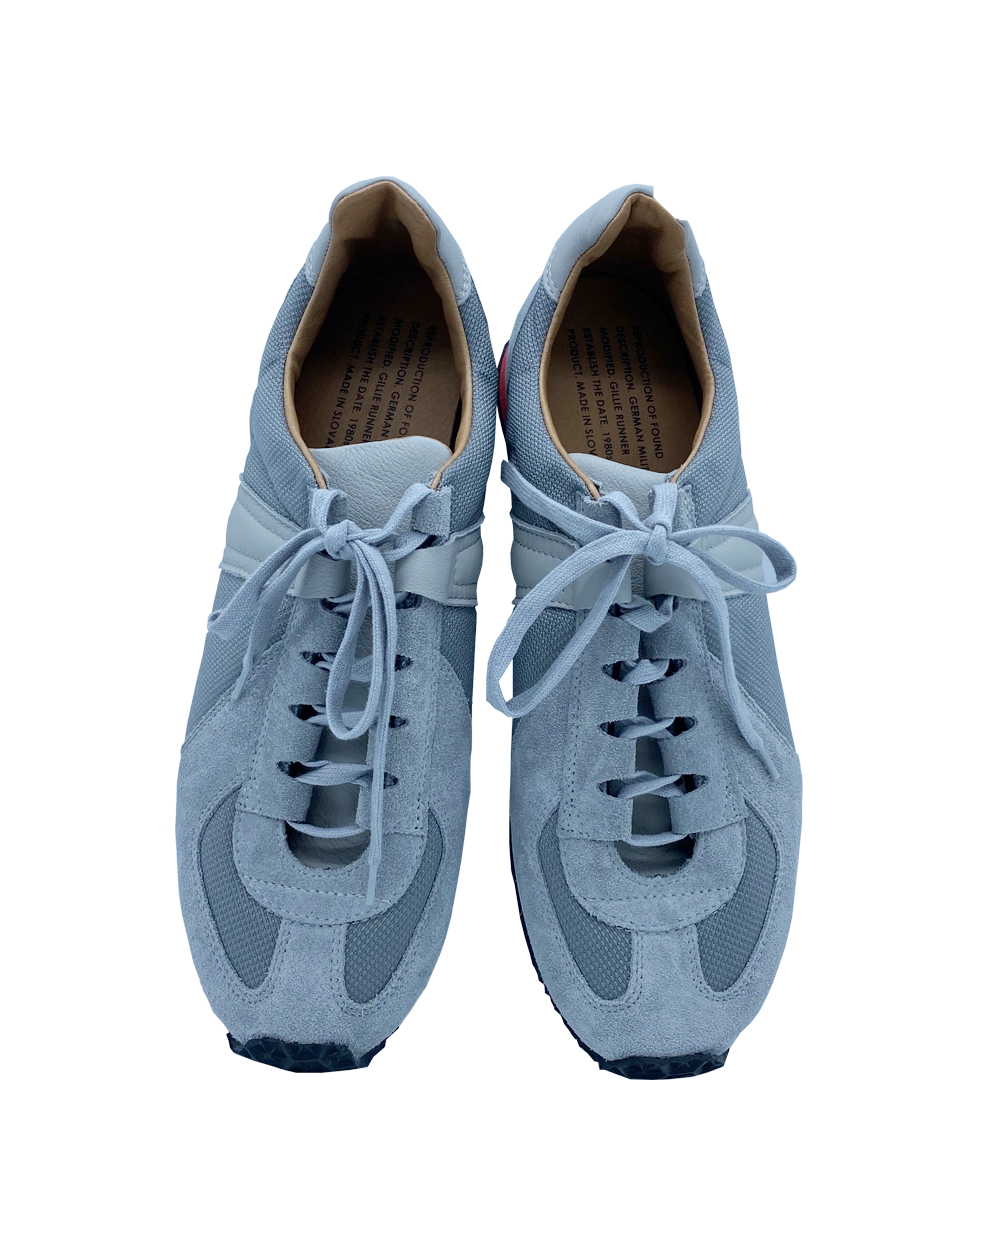 리프로덕션 오브 파운드 GERMAN MILITARY TRAINER 1766CSL (Gray/Light gray)